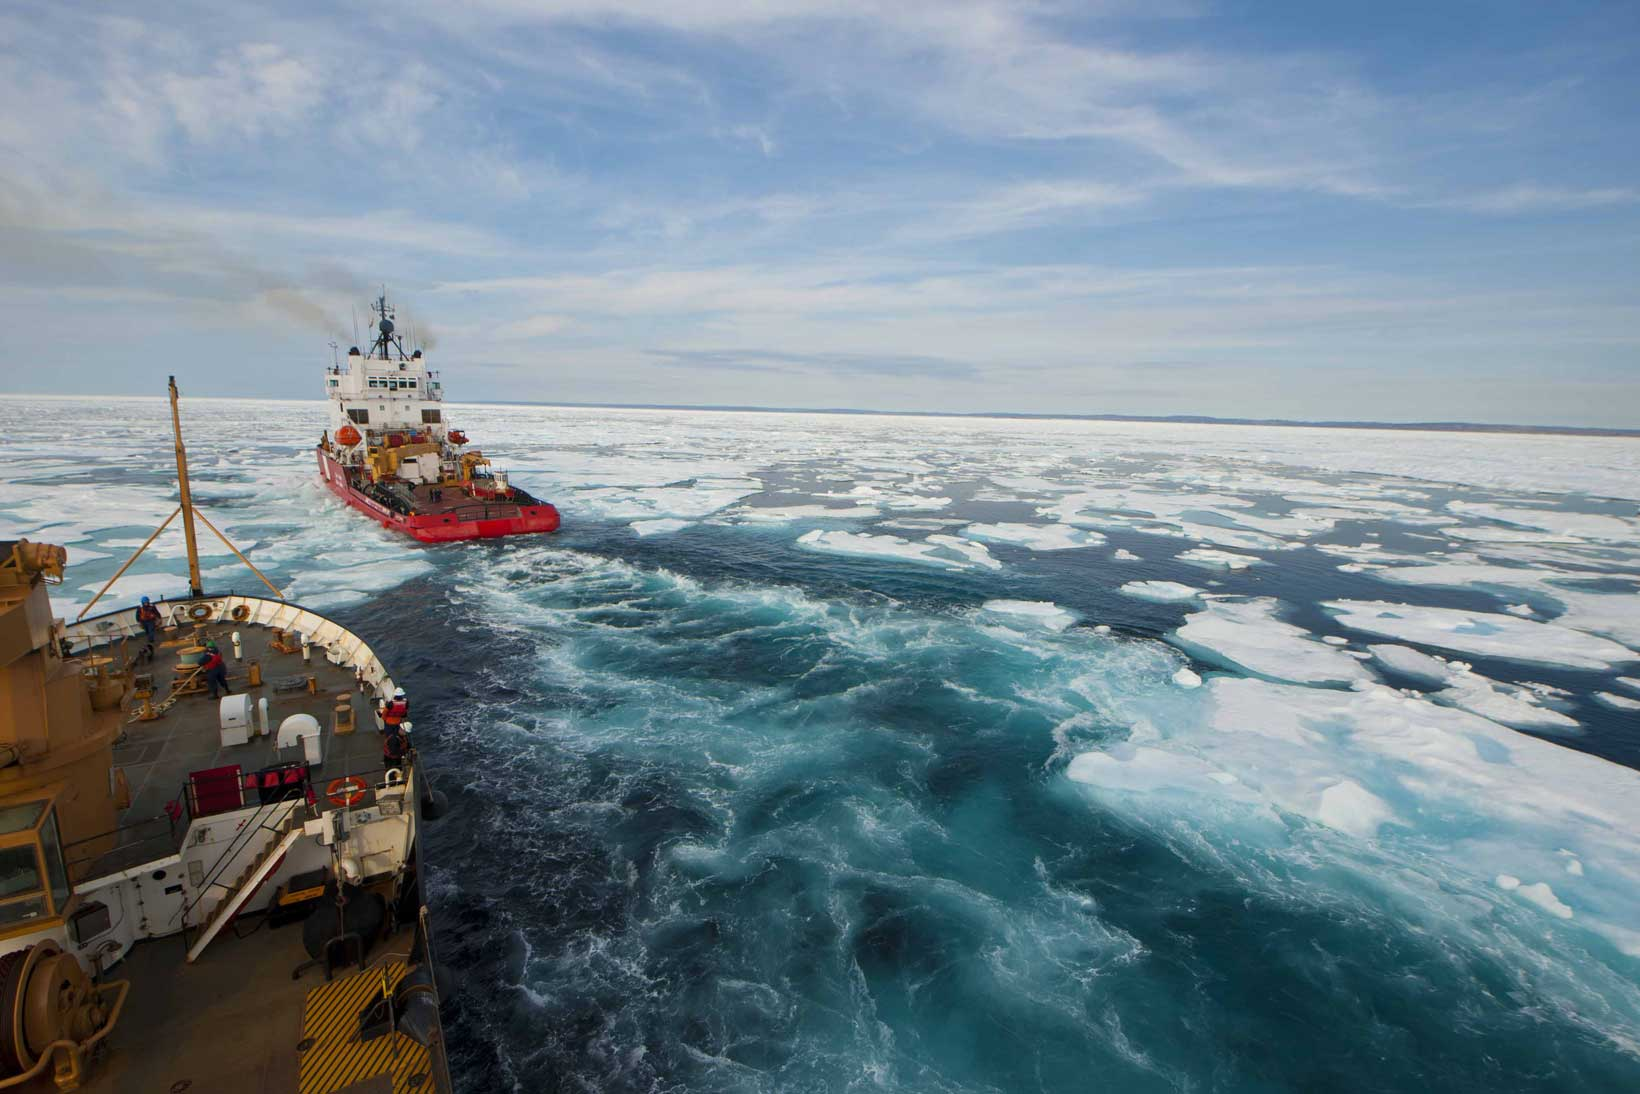 Breaking ice in the Franklin Strait, Nunavut, Northern Canada